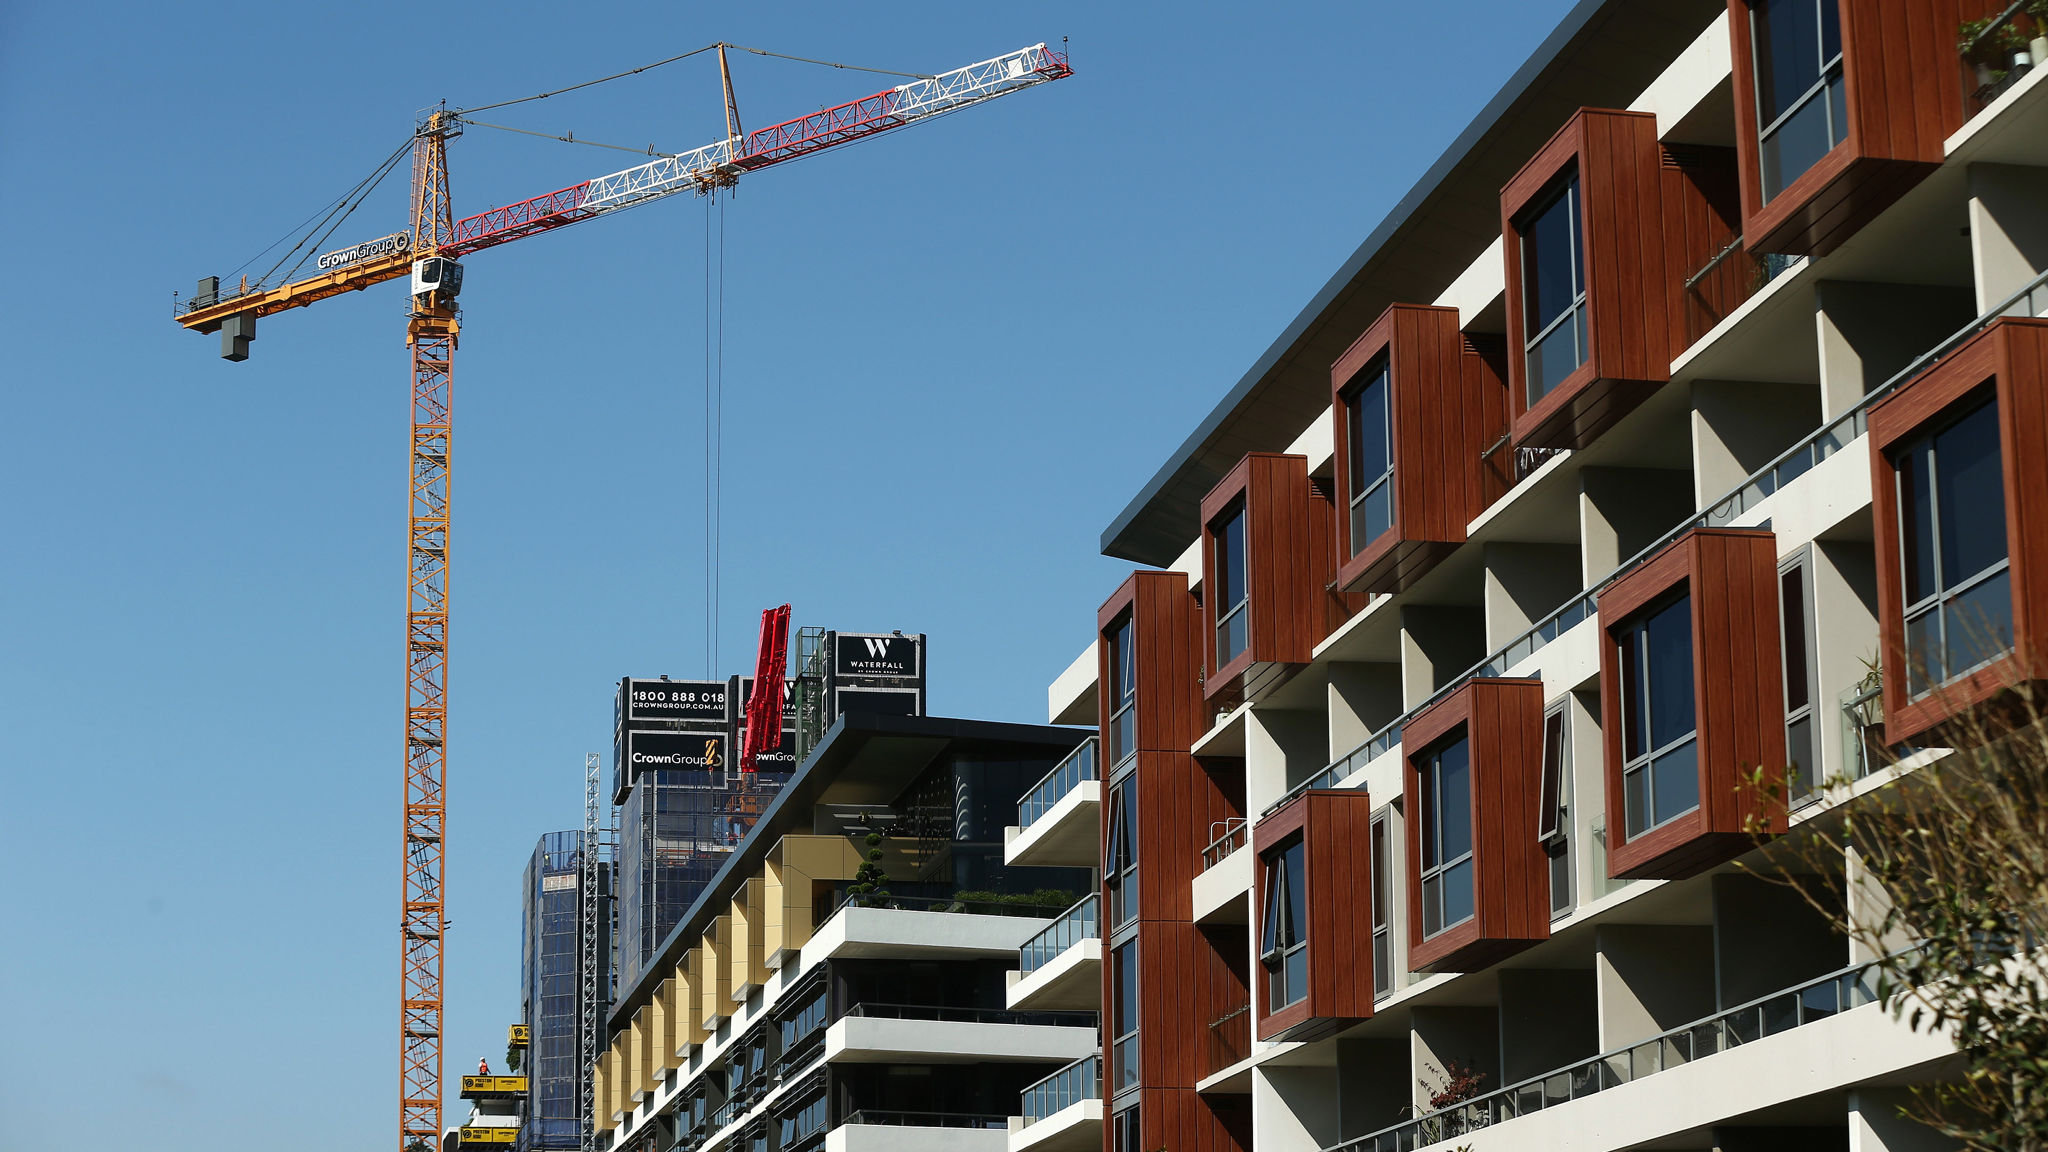 Australia mortgage lending surges on relaxation of rules